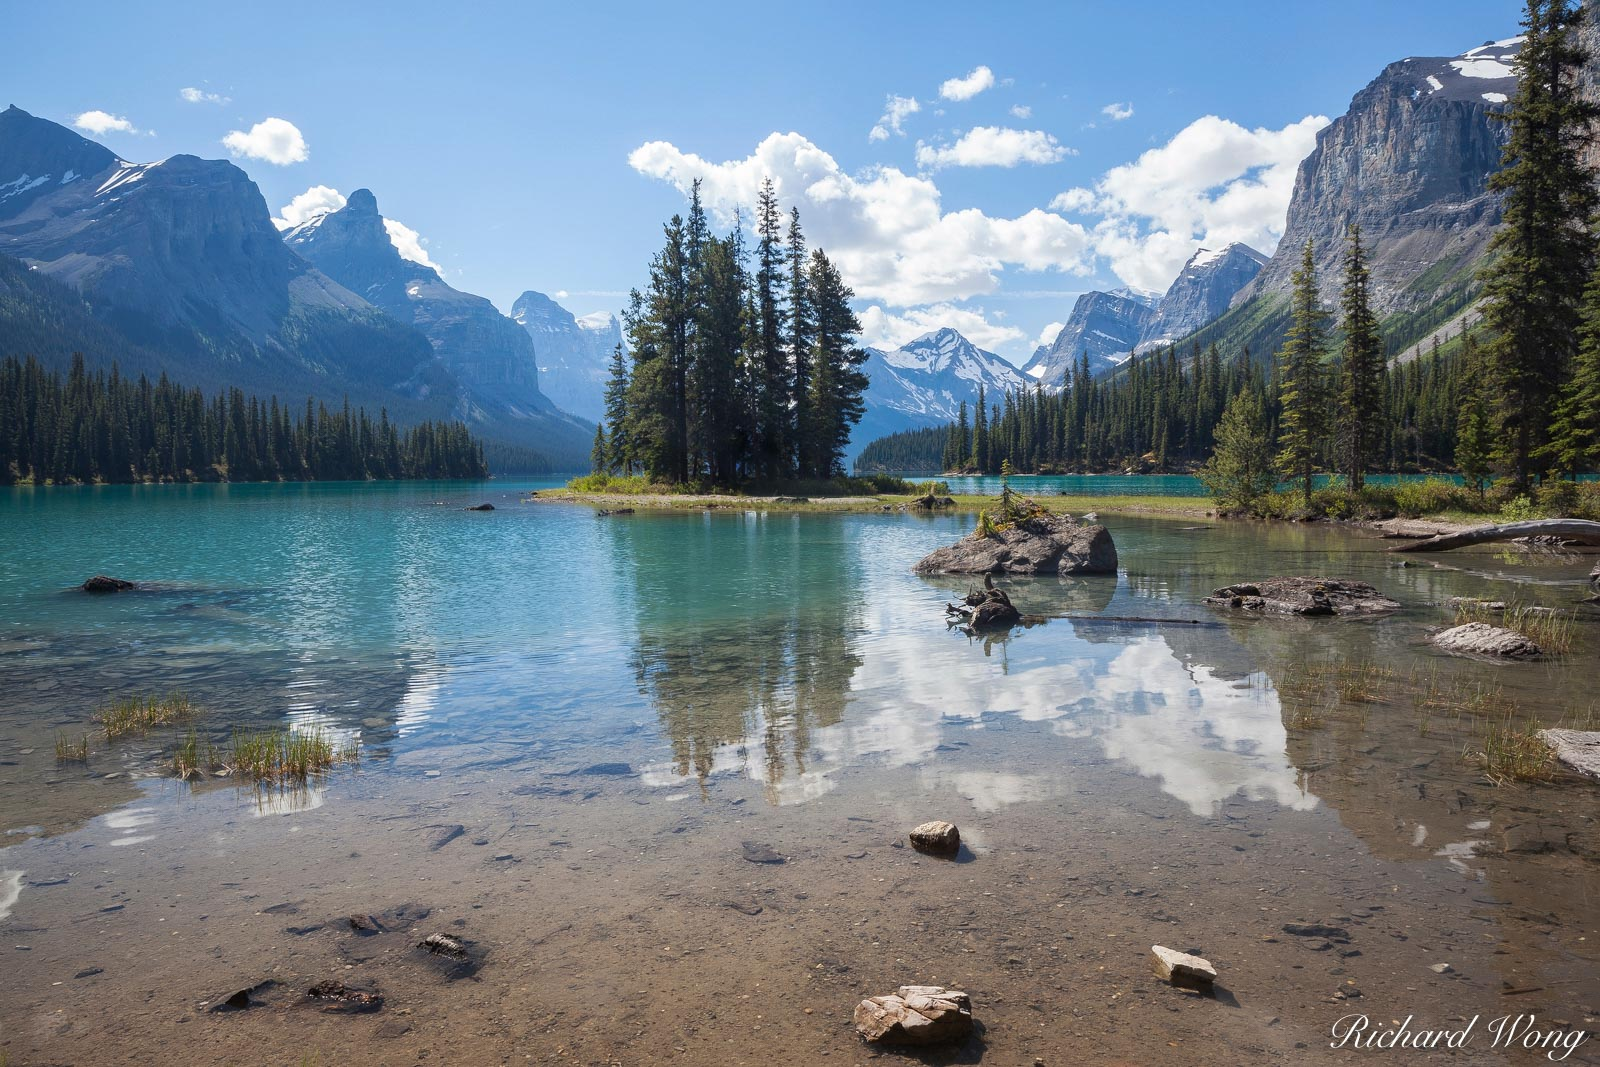 Peter Lik Spirit Island Style Photo, Spirit Island at Maligne Lake, Jasper National Park, Alberta, Canada, photo